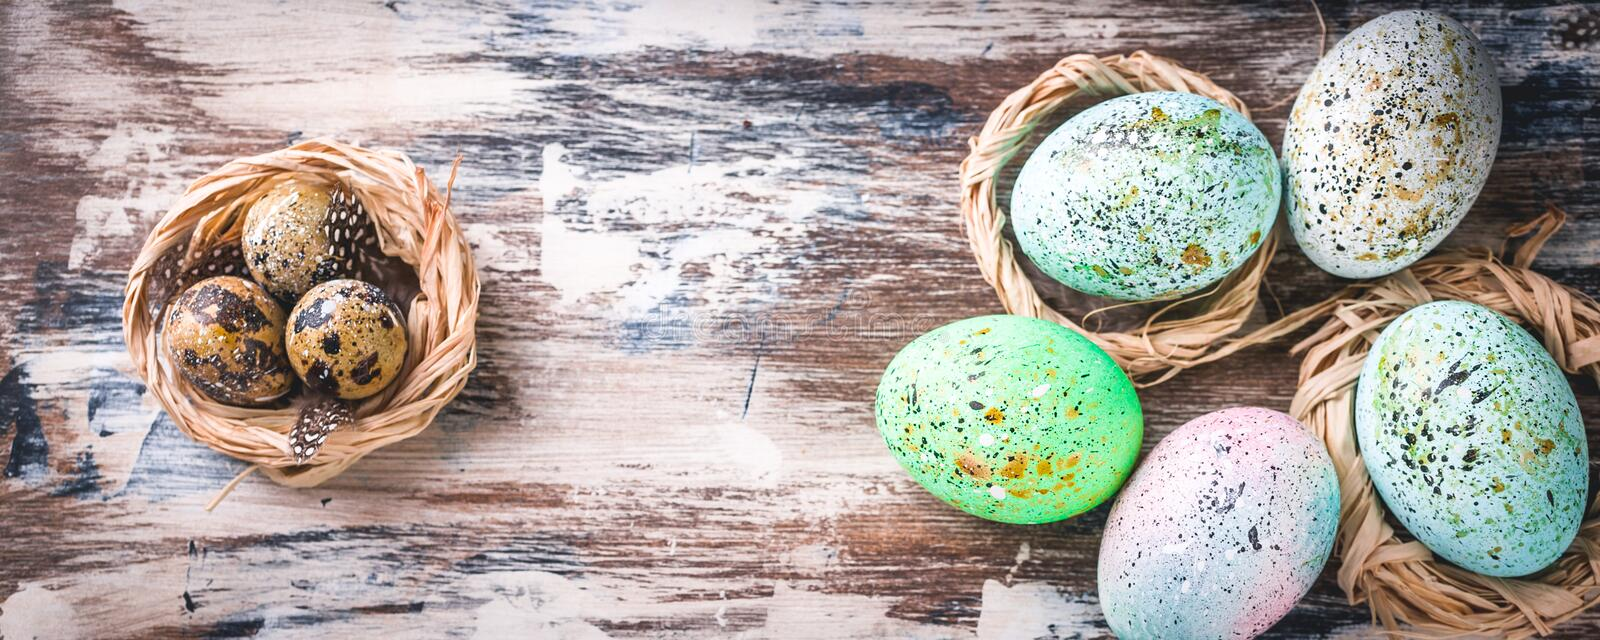 Easter banner. Easter eggs in nests. Rustic surface. Vertical shot royalty free stock photos